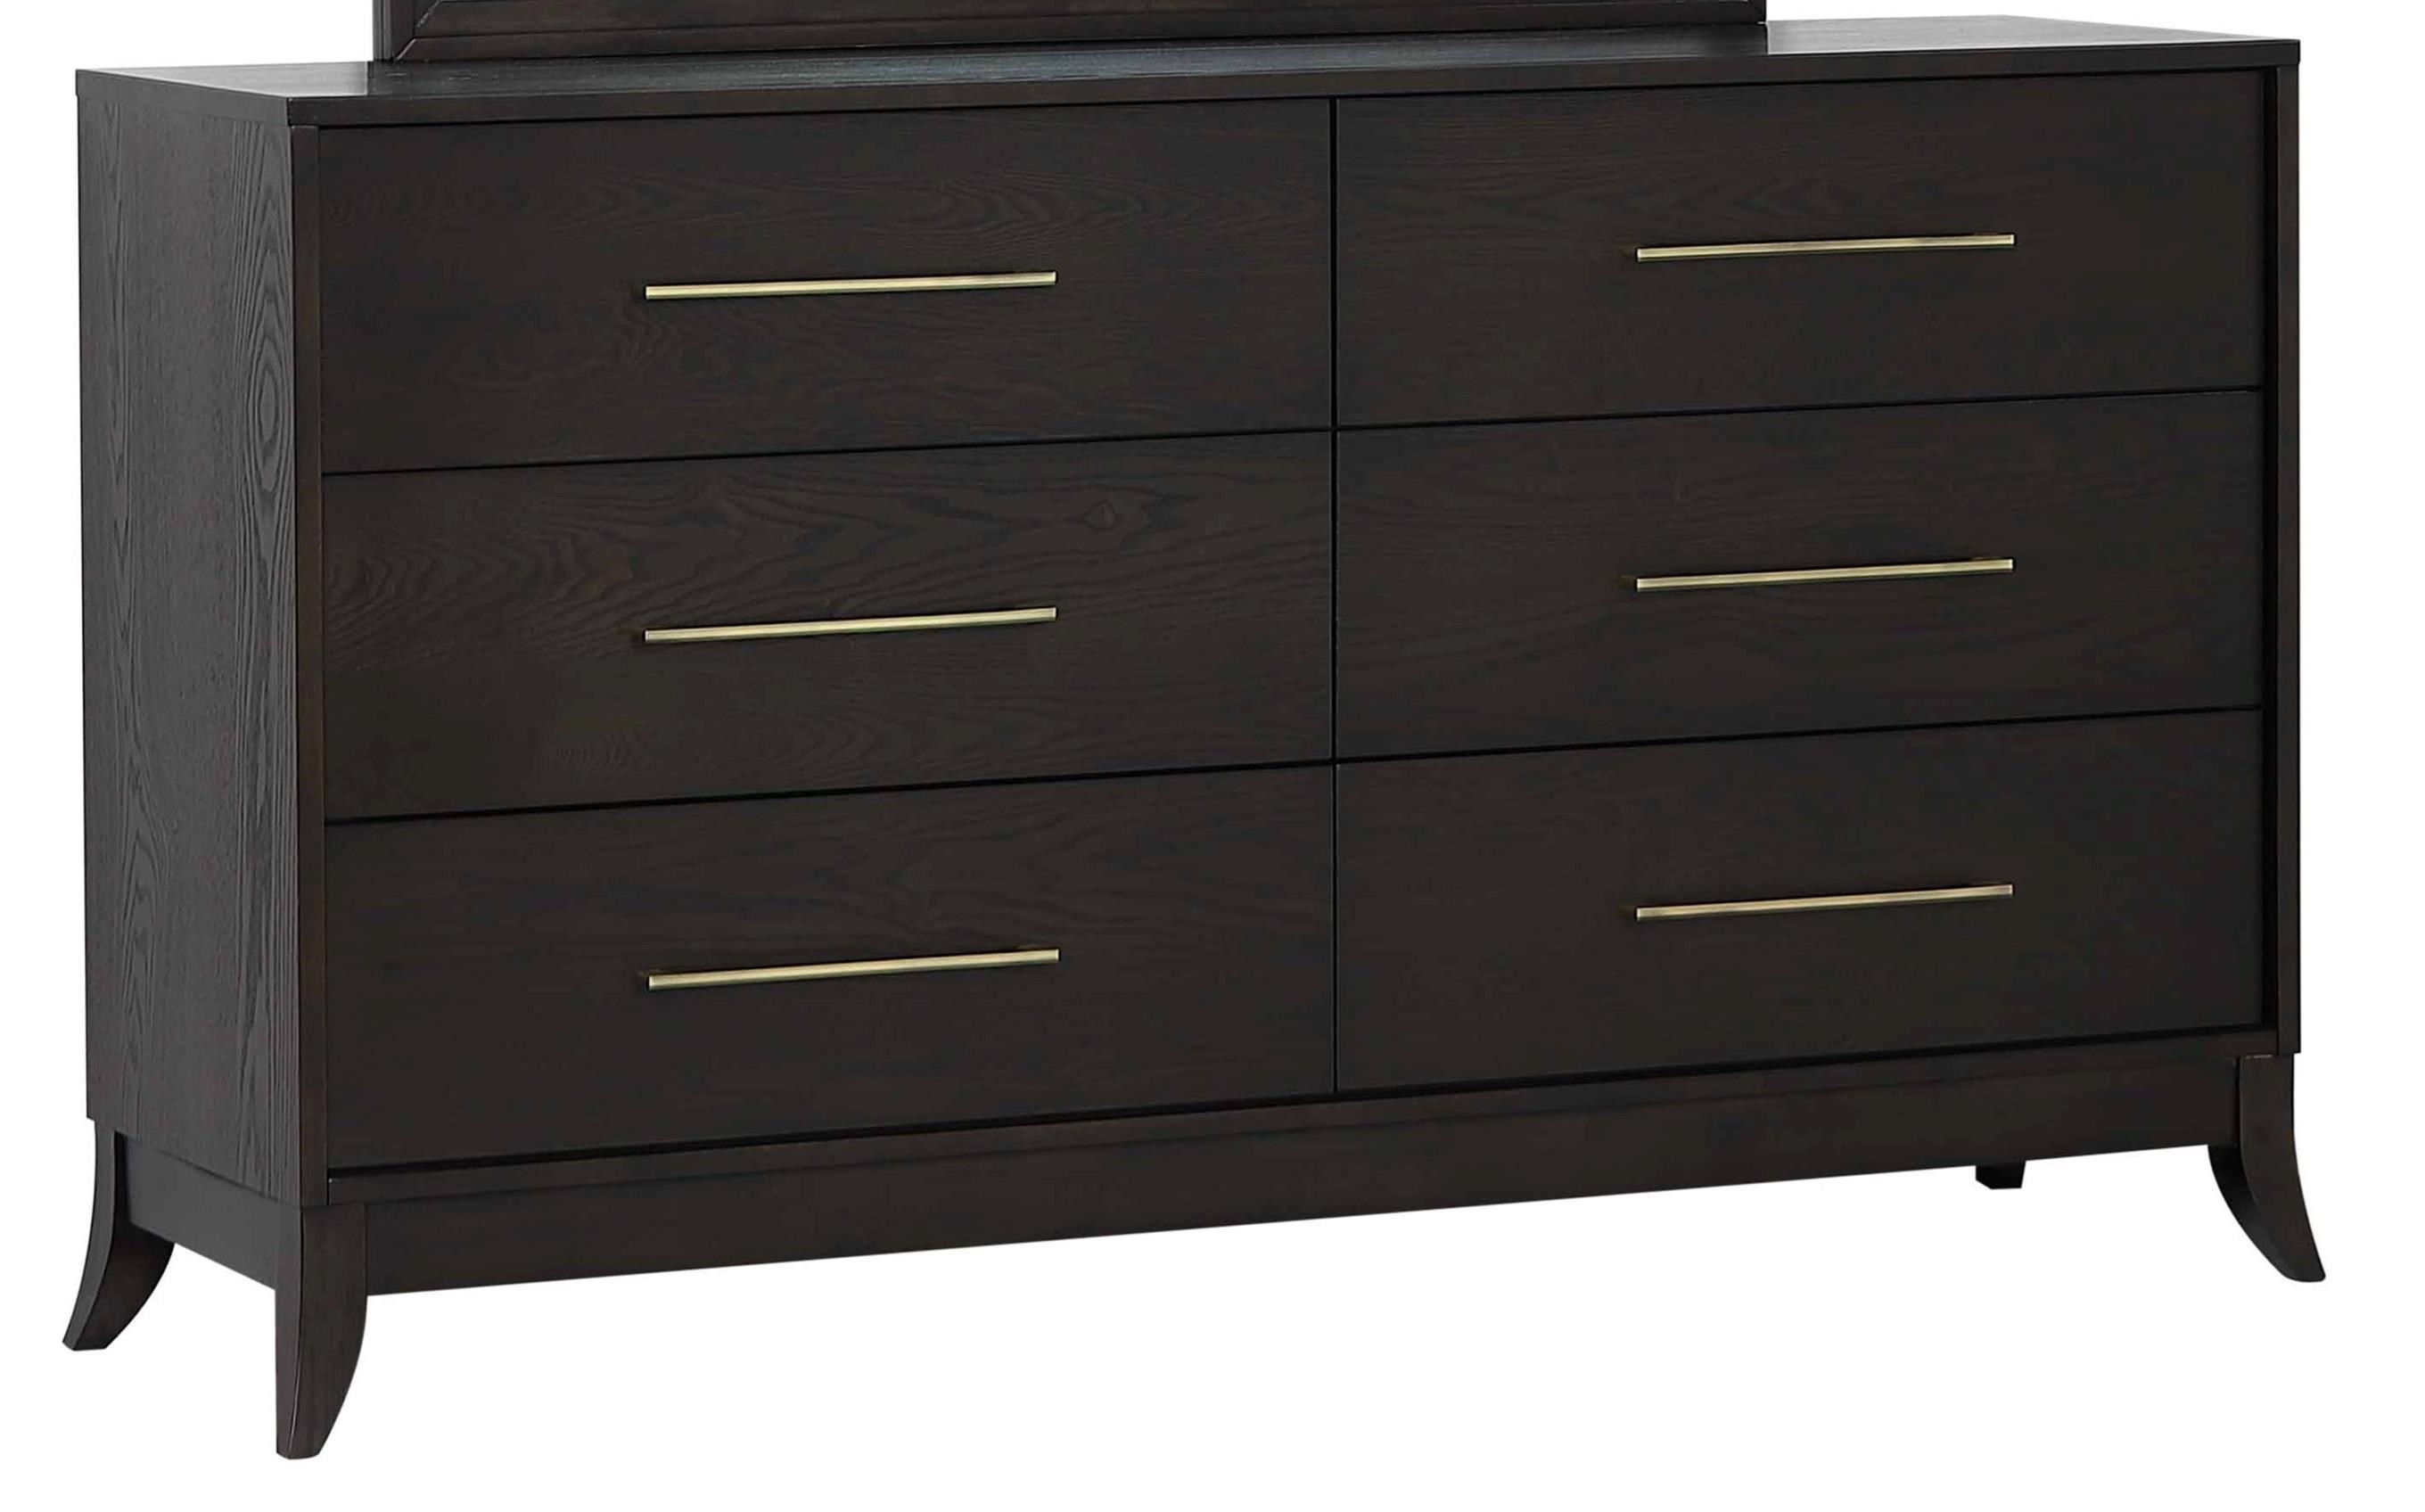 Logan Square Dresser by New Classic at H.L. Stephens